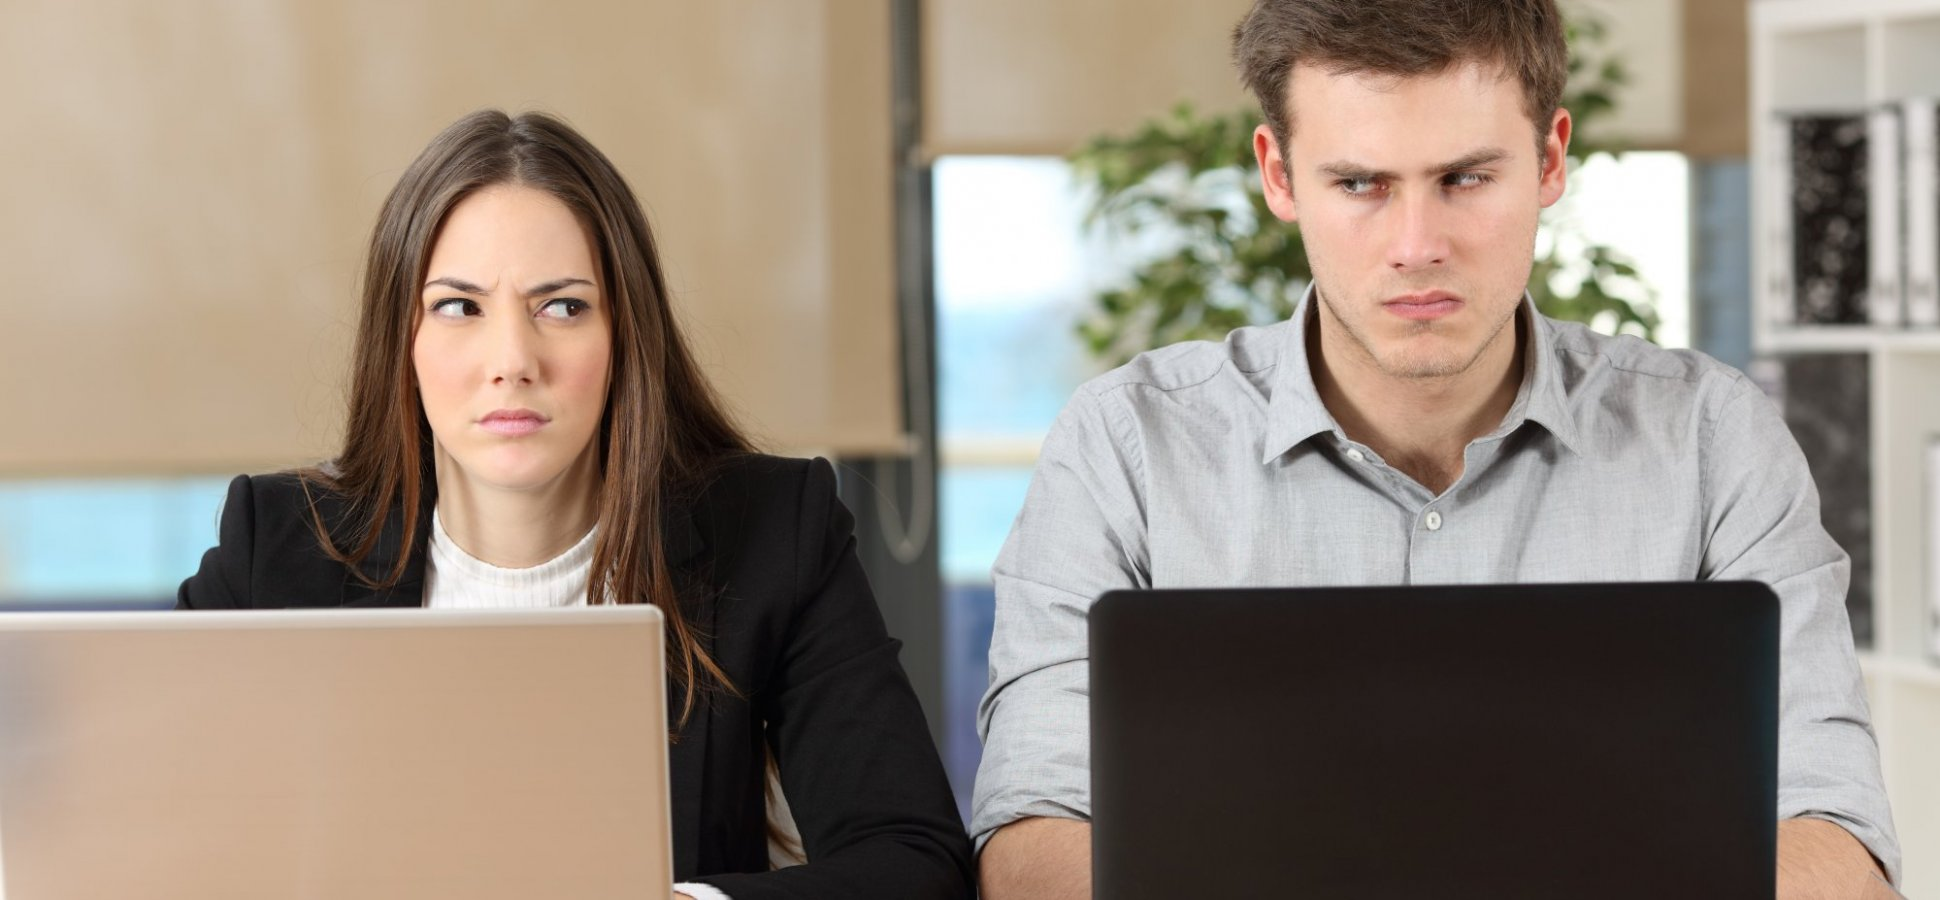 How to Stop a Toxic Workplace Culture Before It Starts